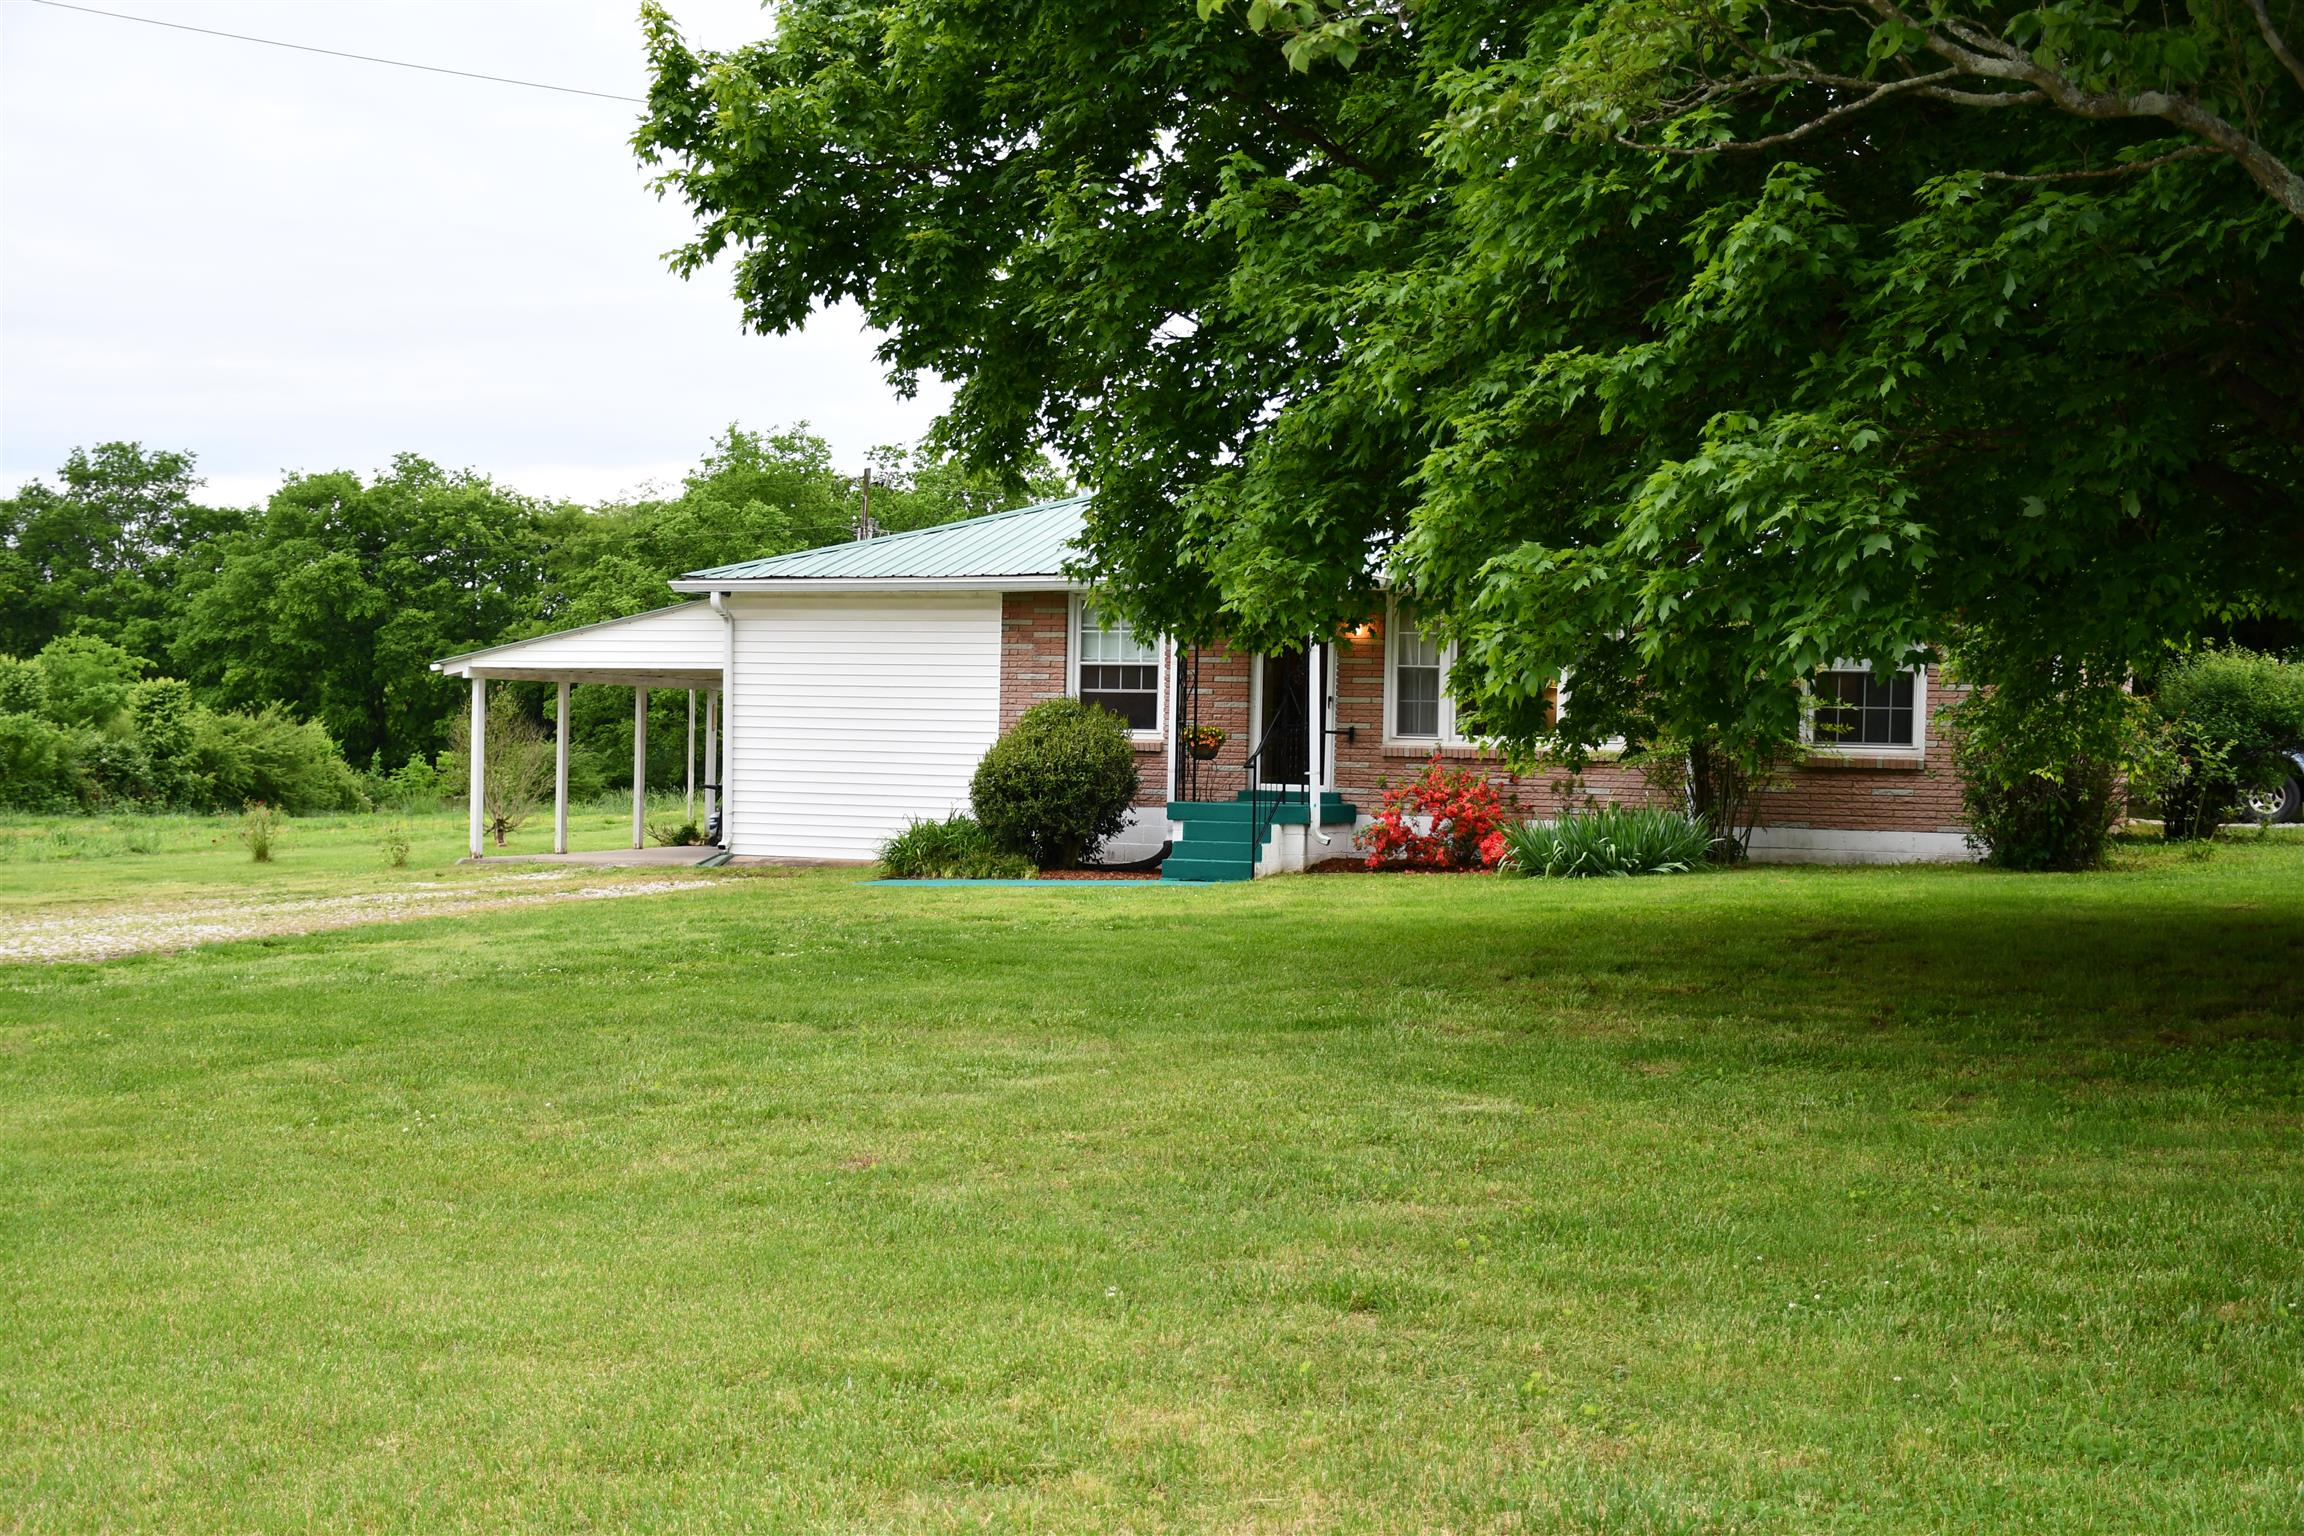 Cozy Home With 2 Car Detached Garage In Rural Setting Located At 669 Dobbins Pike, Gallatin, TN, 37066